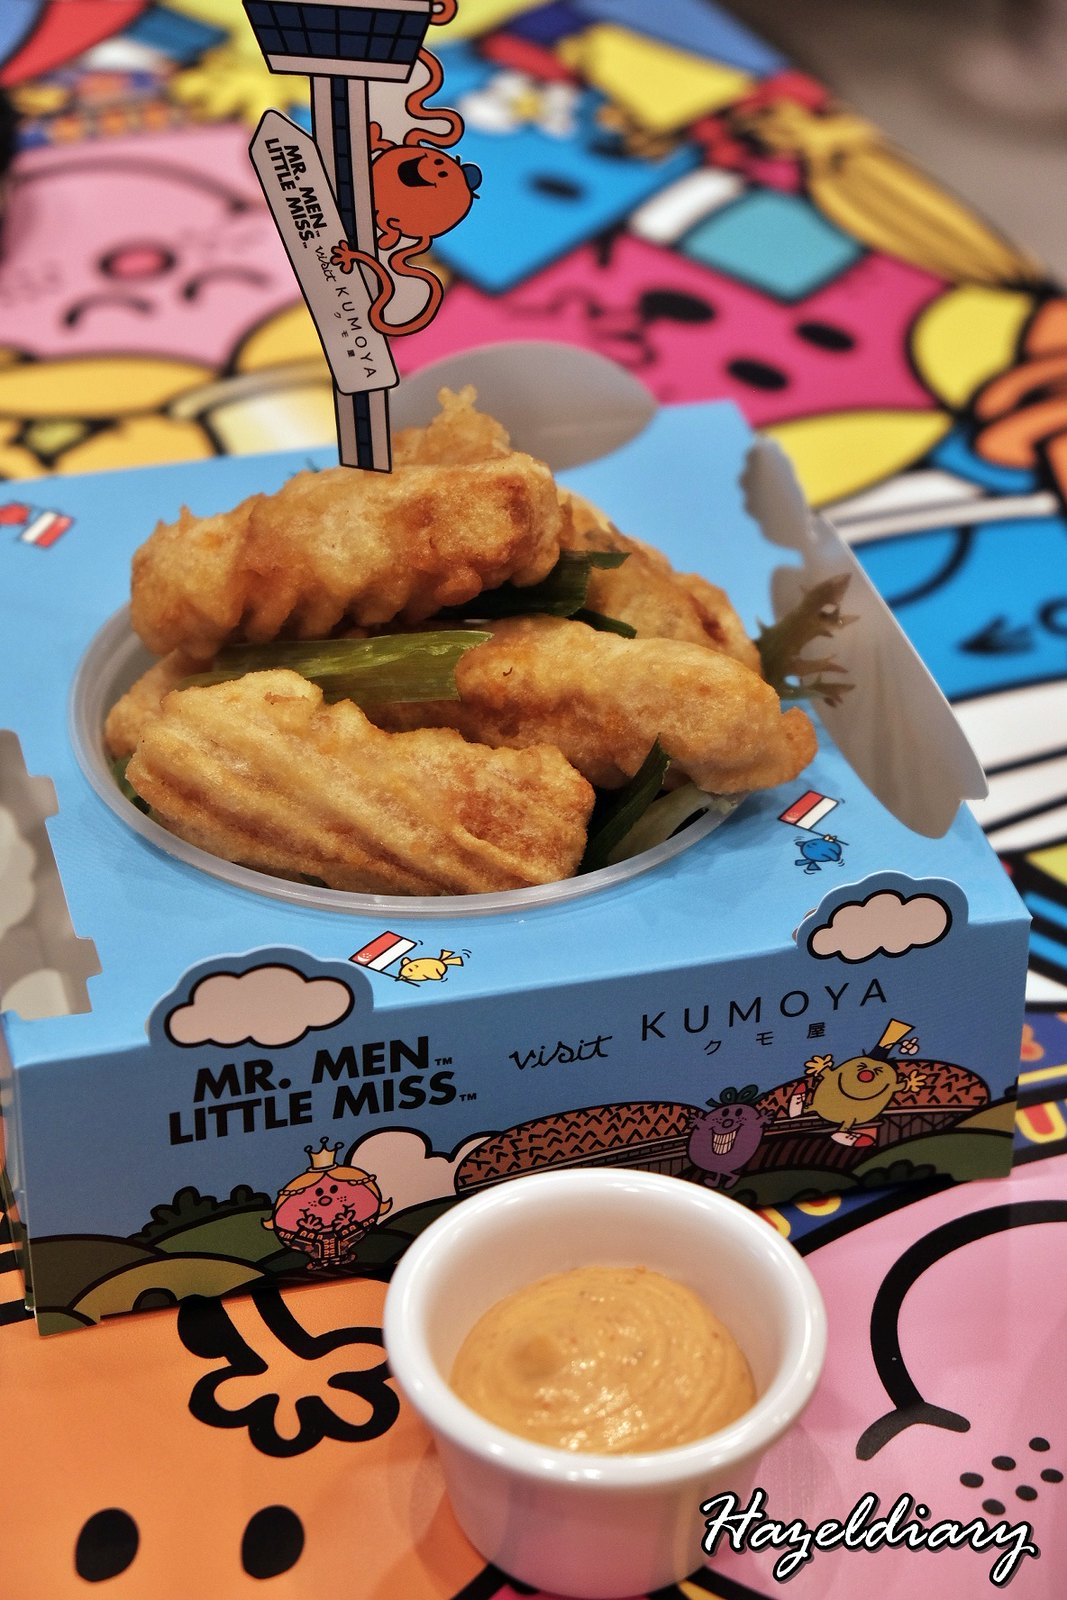 Kumoya Mr Men Little Miss-Tempura Mackerel Otah with Sambal Mayo